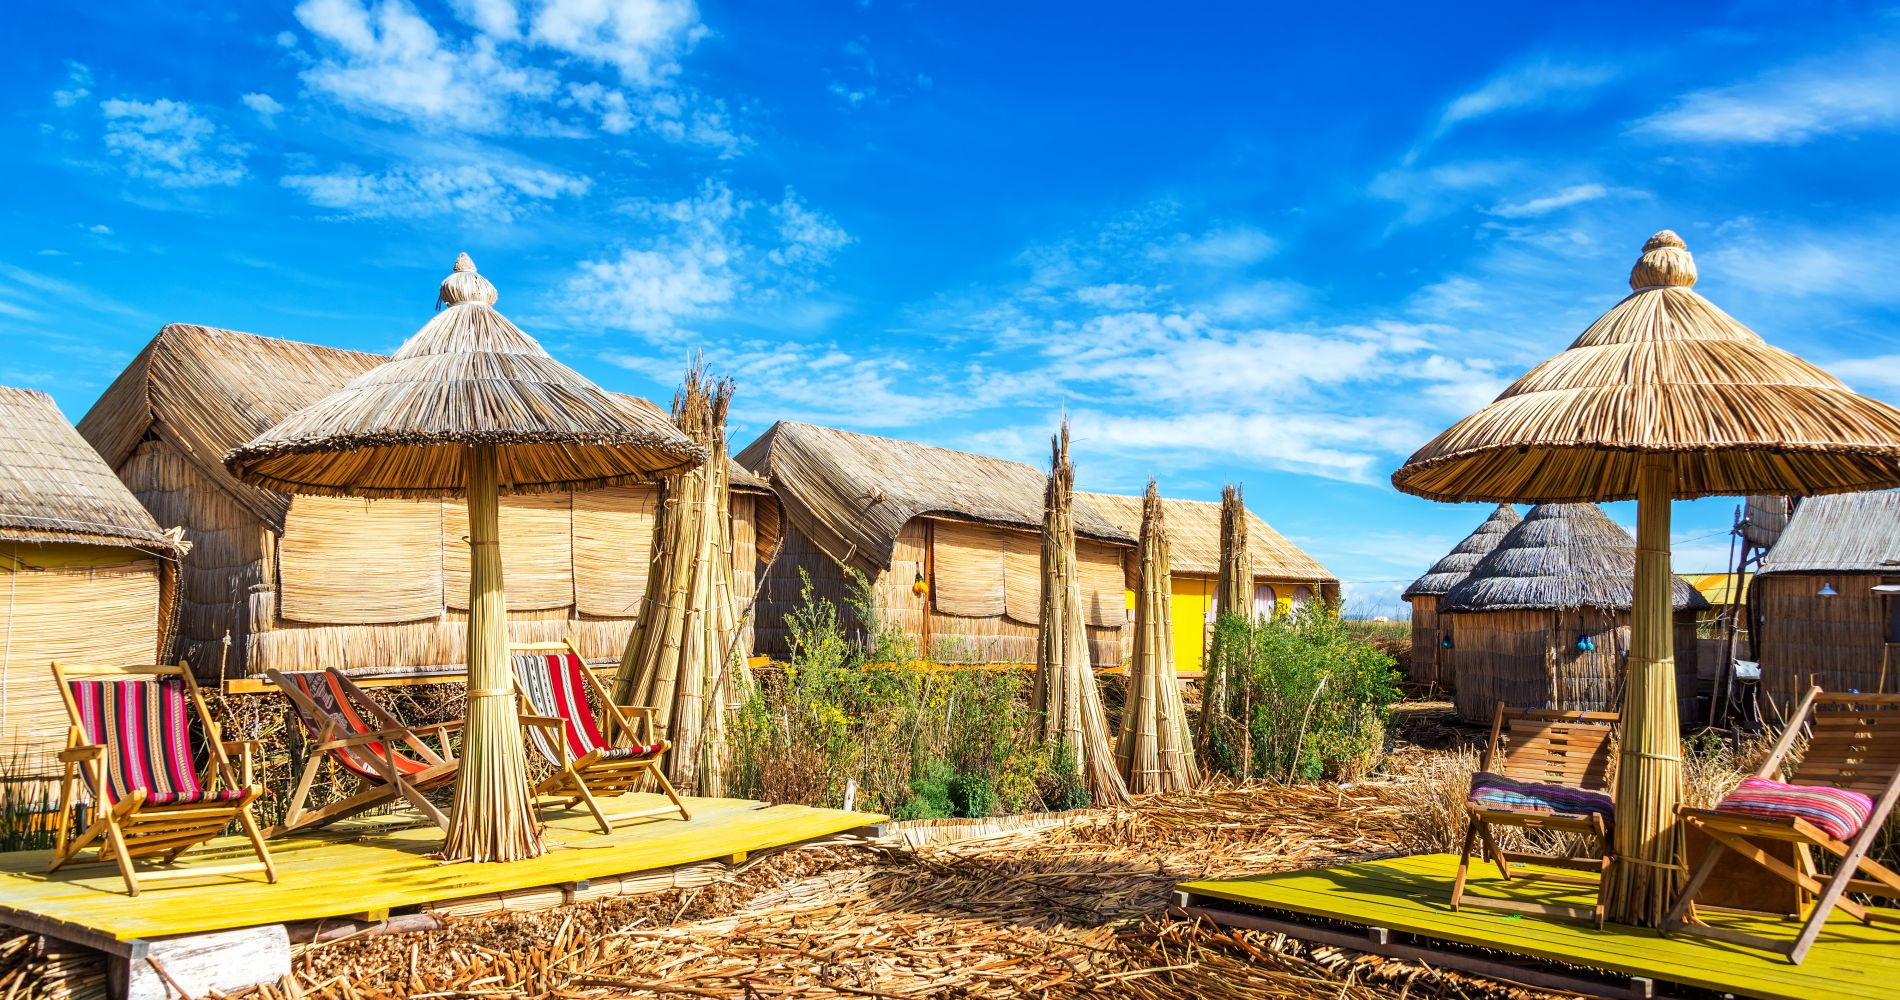 Full-Day Tour of Lake Titicaca from Puno